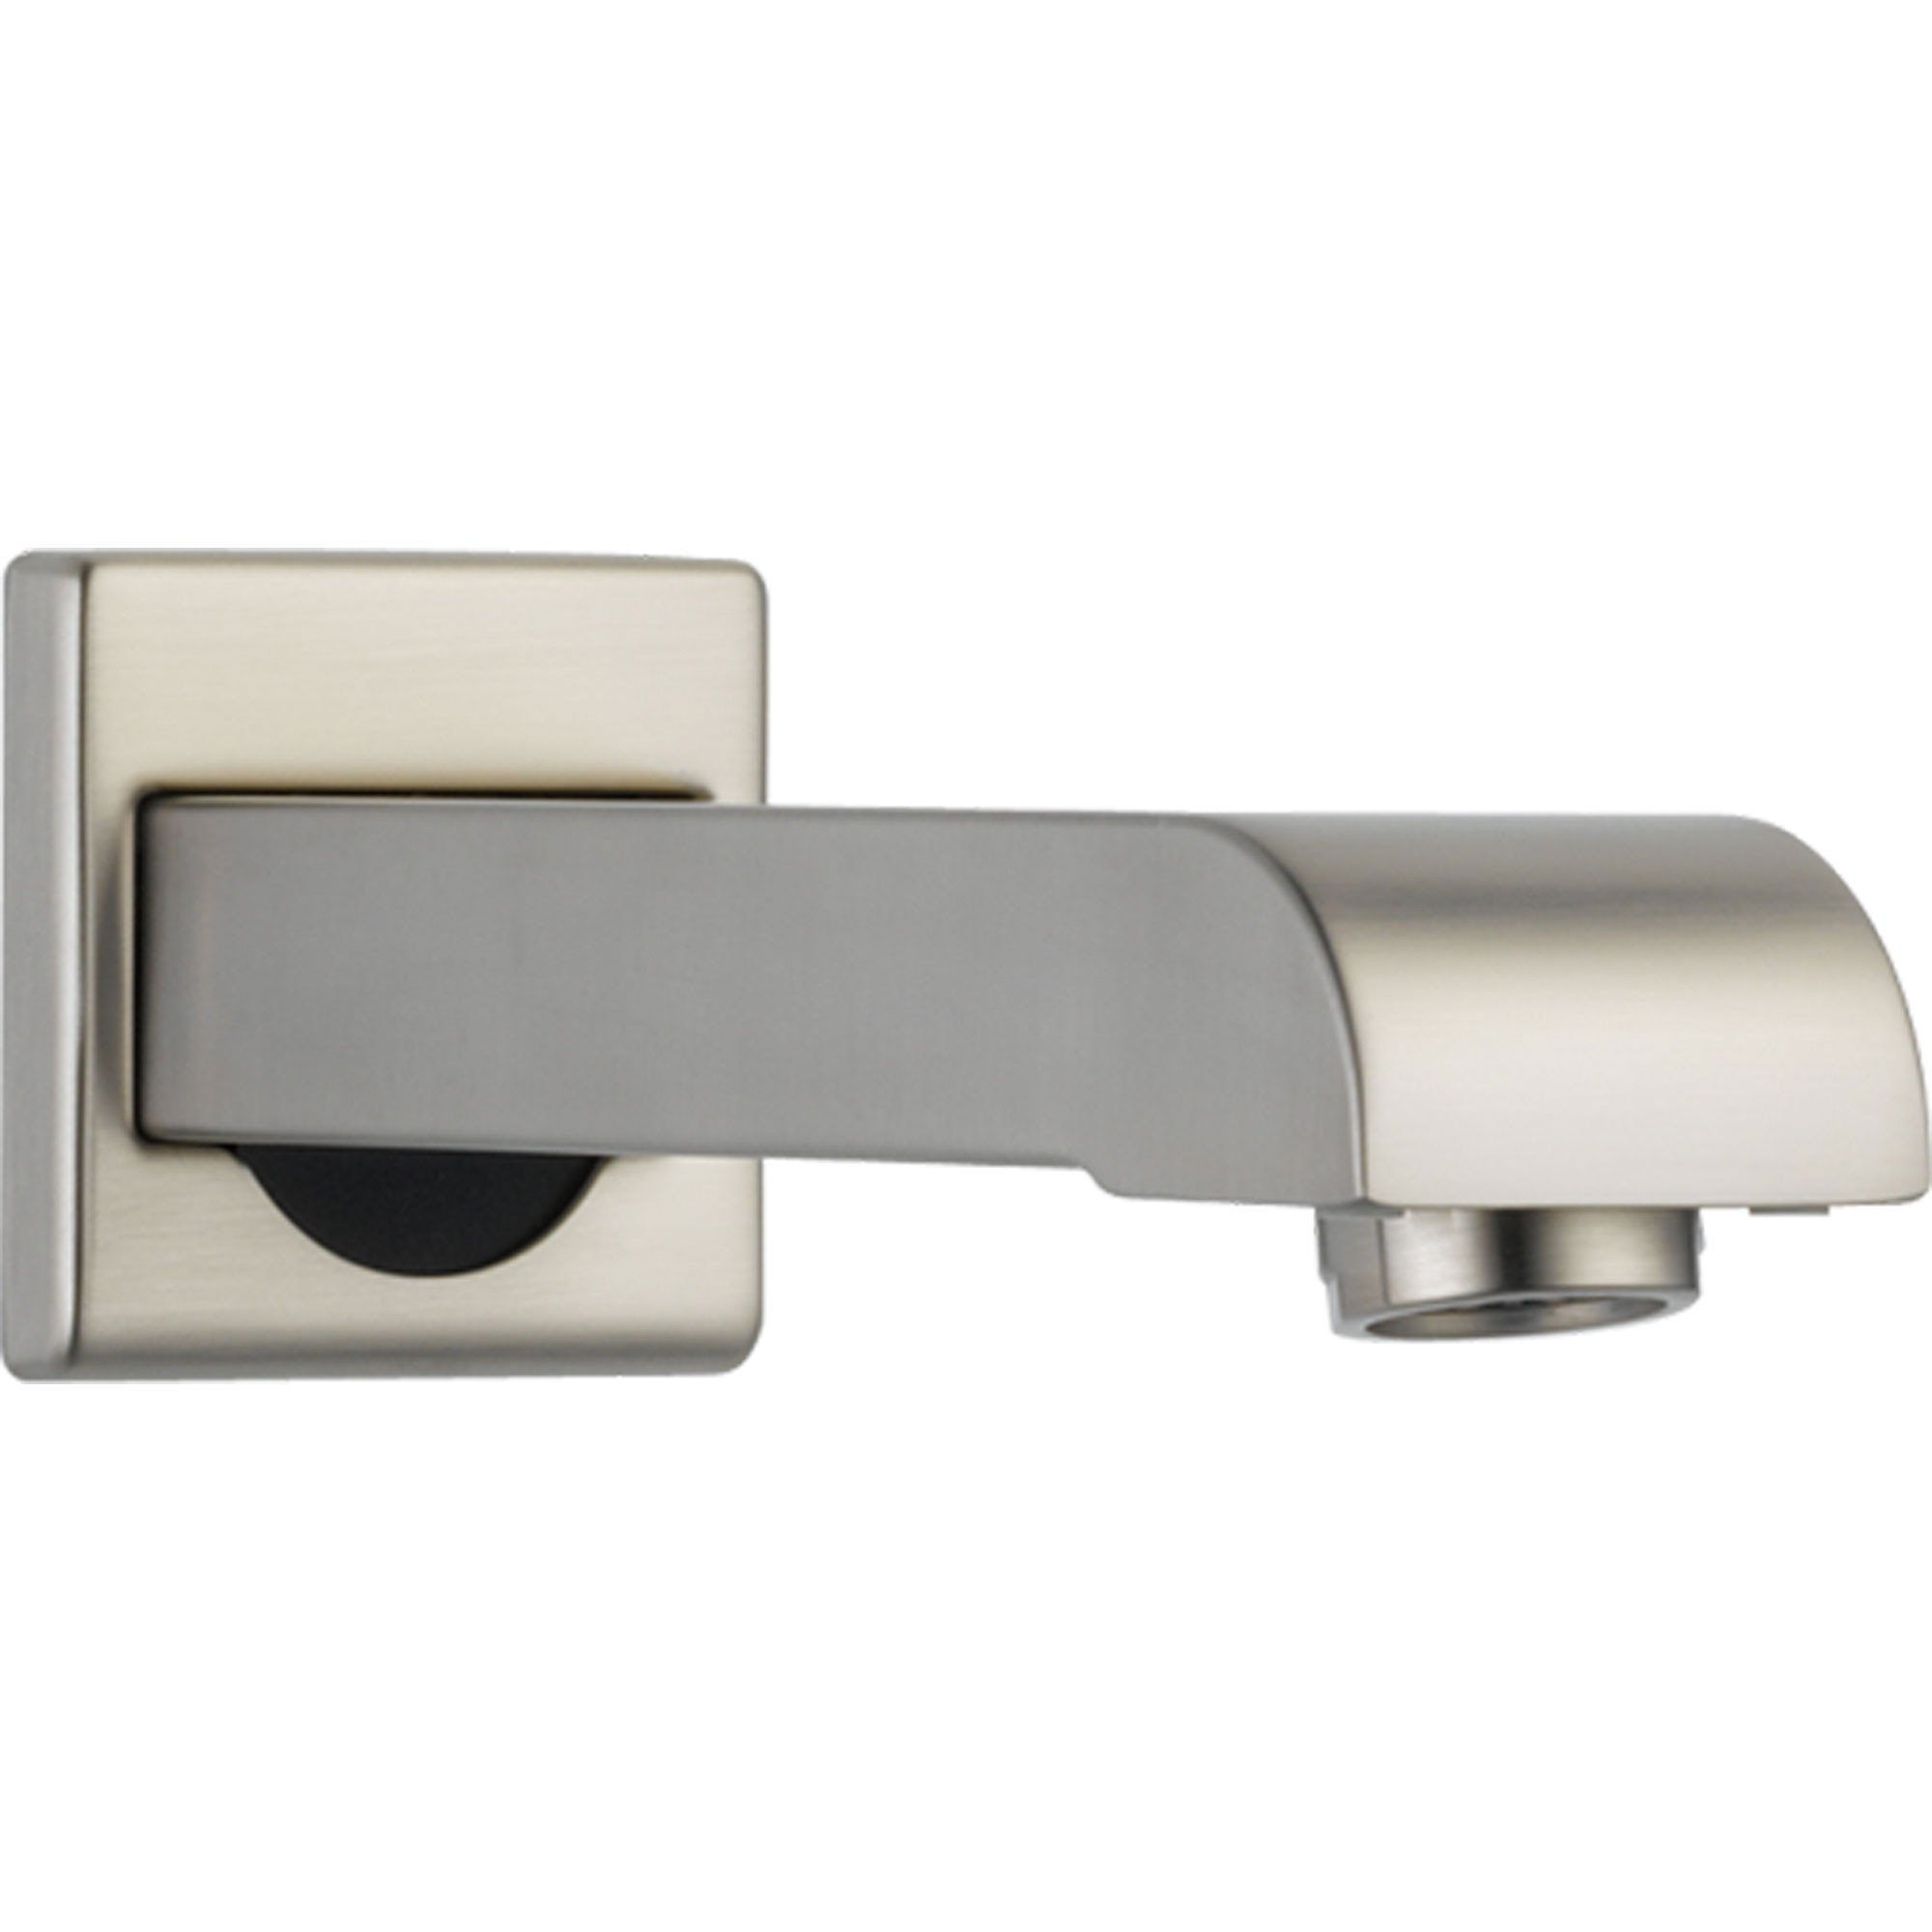 "Delta Arzo Stainless Steel Finish Modern 7"" Metal Non-Diverter Tub Spout 588645"